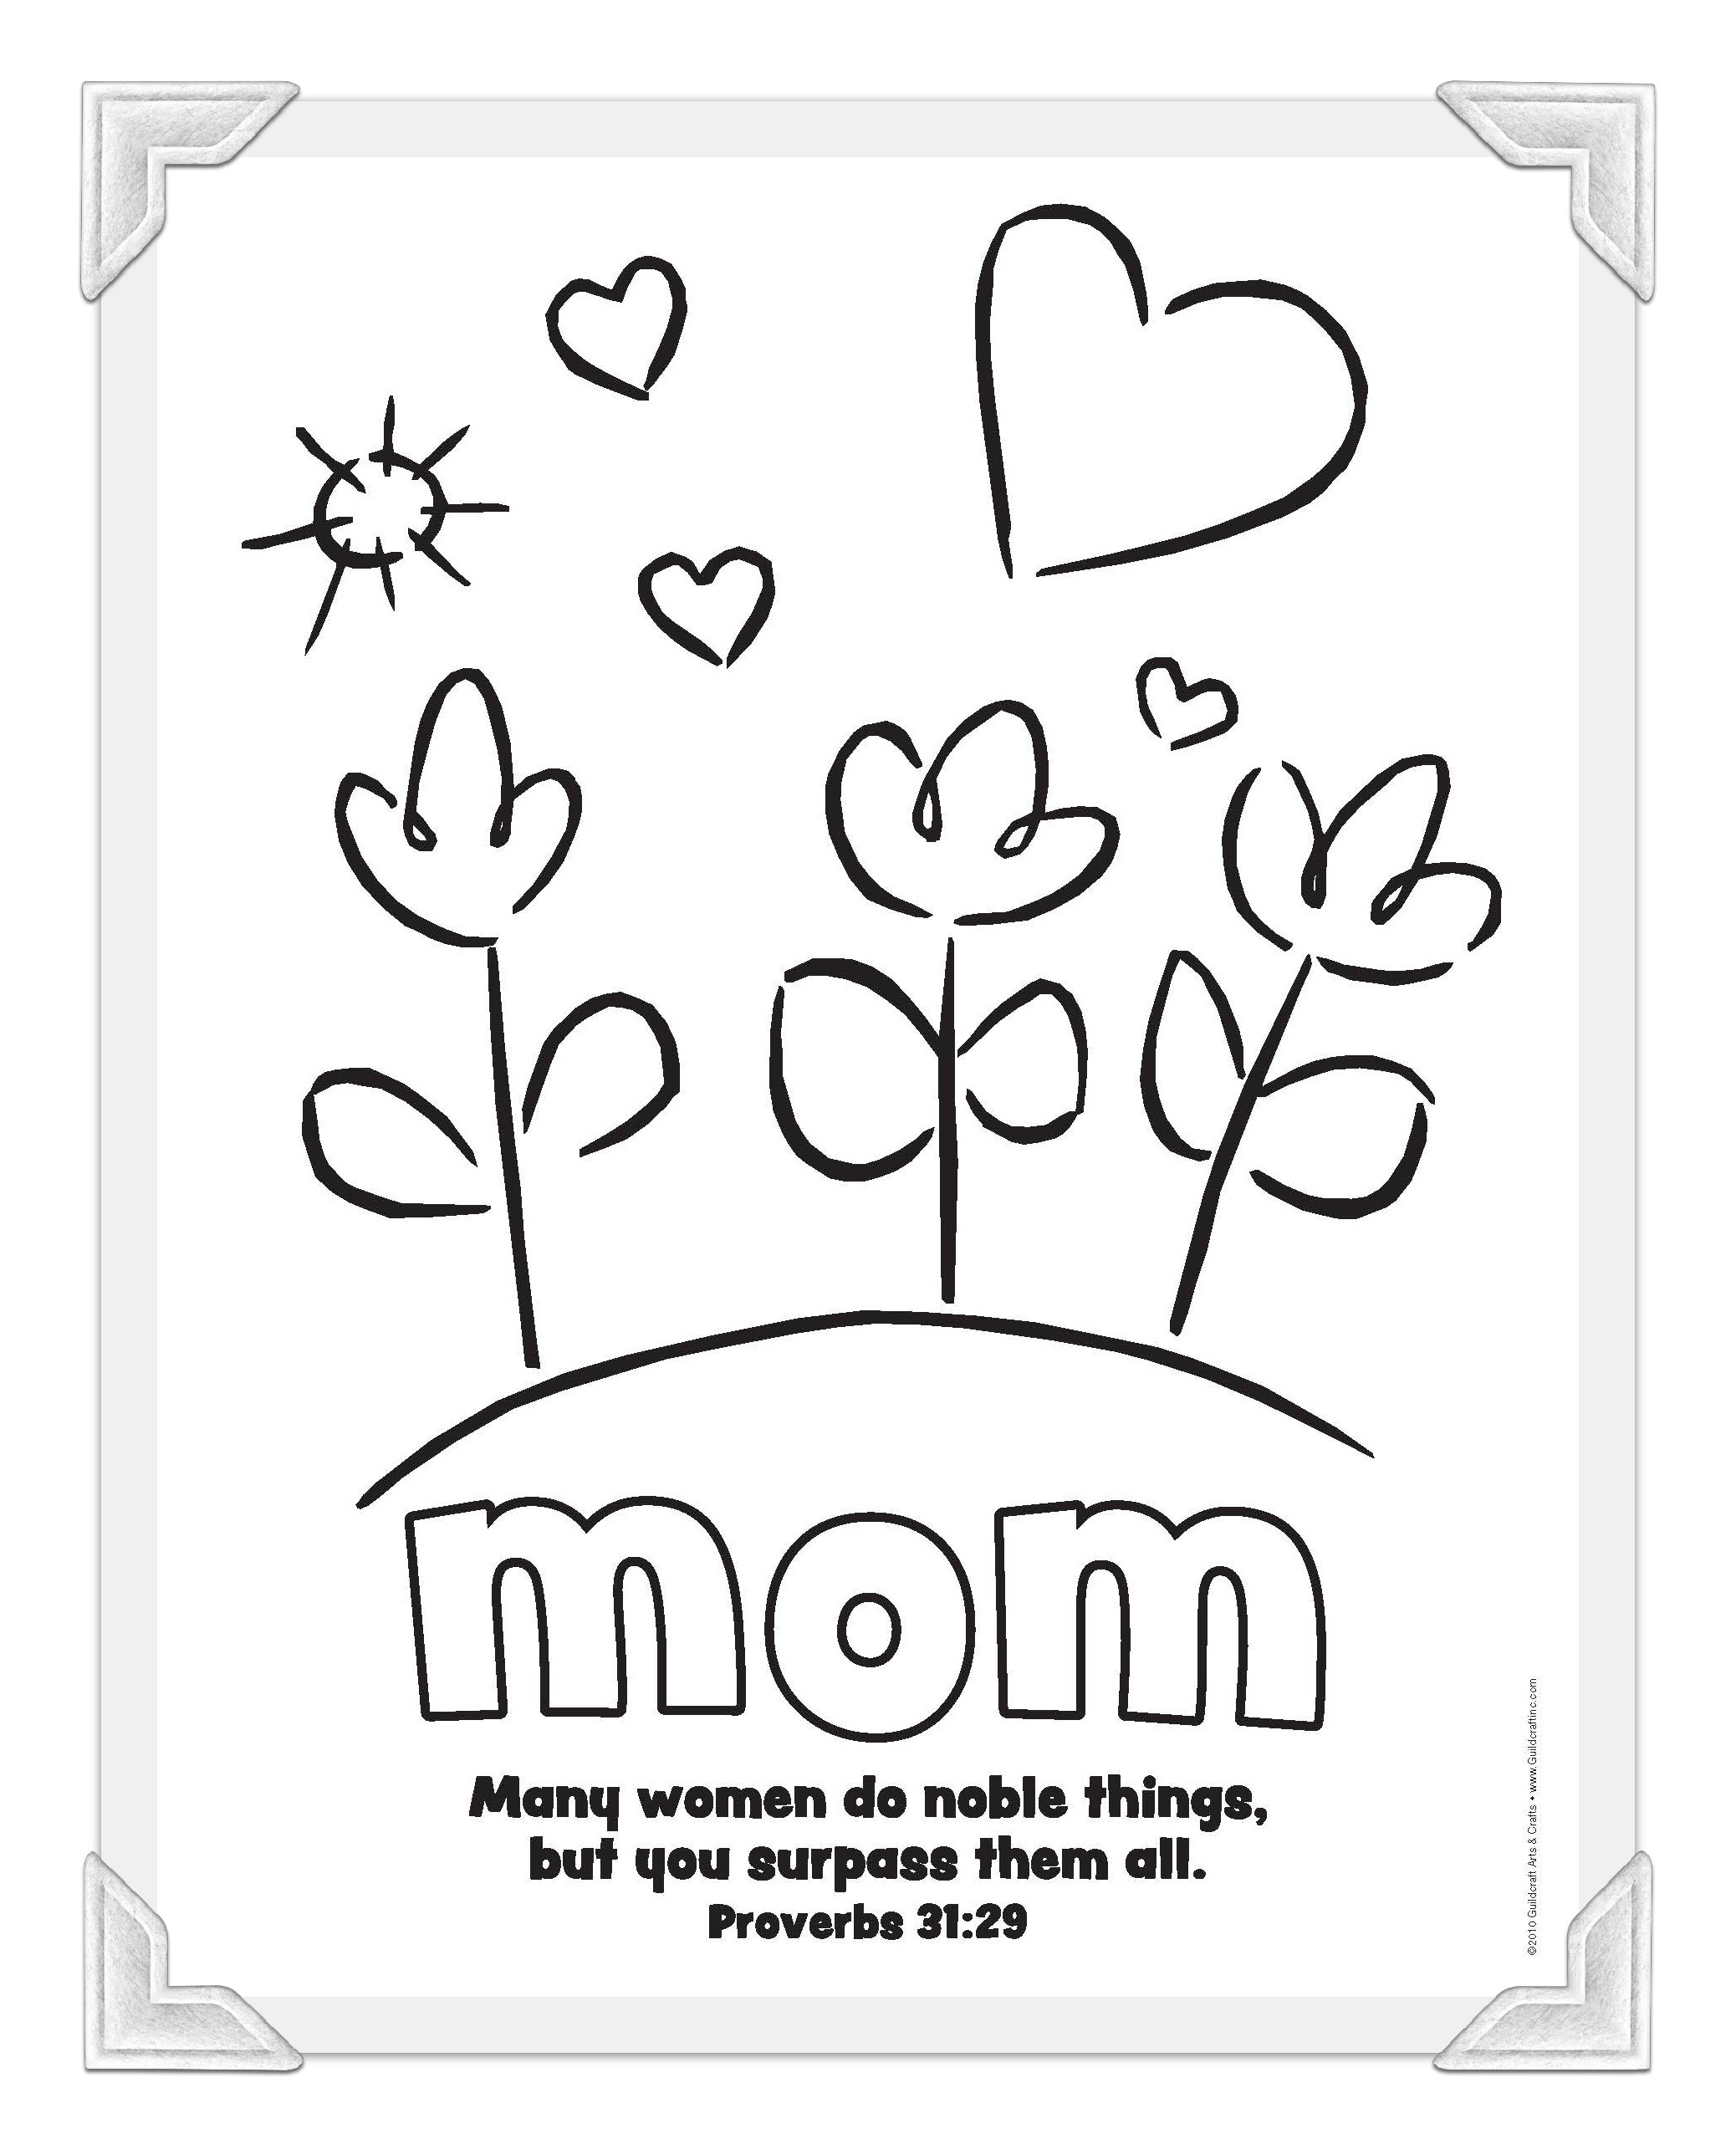 Mothers Day Coloring Pages For Kids At Getdrawings Com Free For